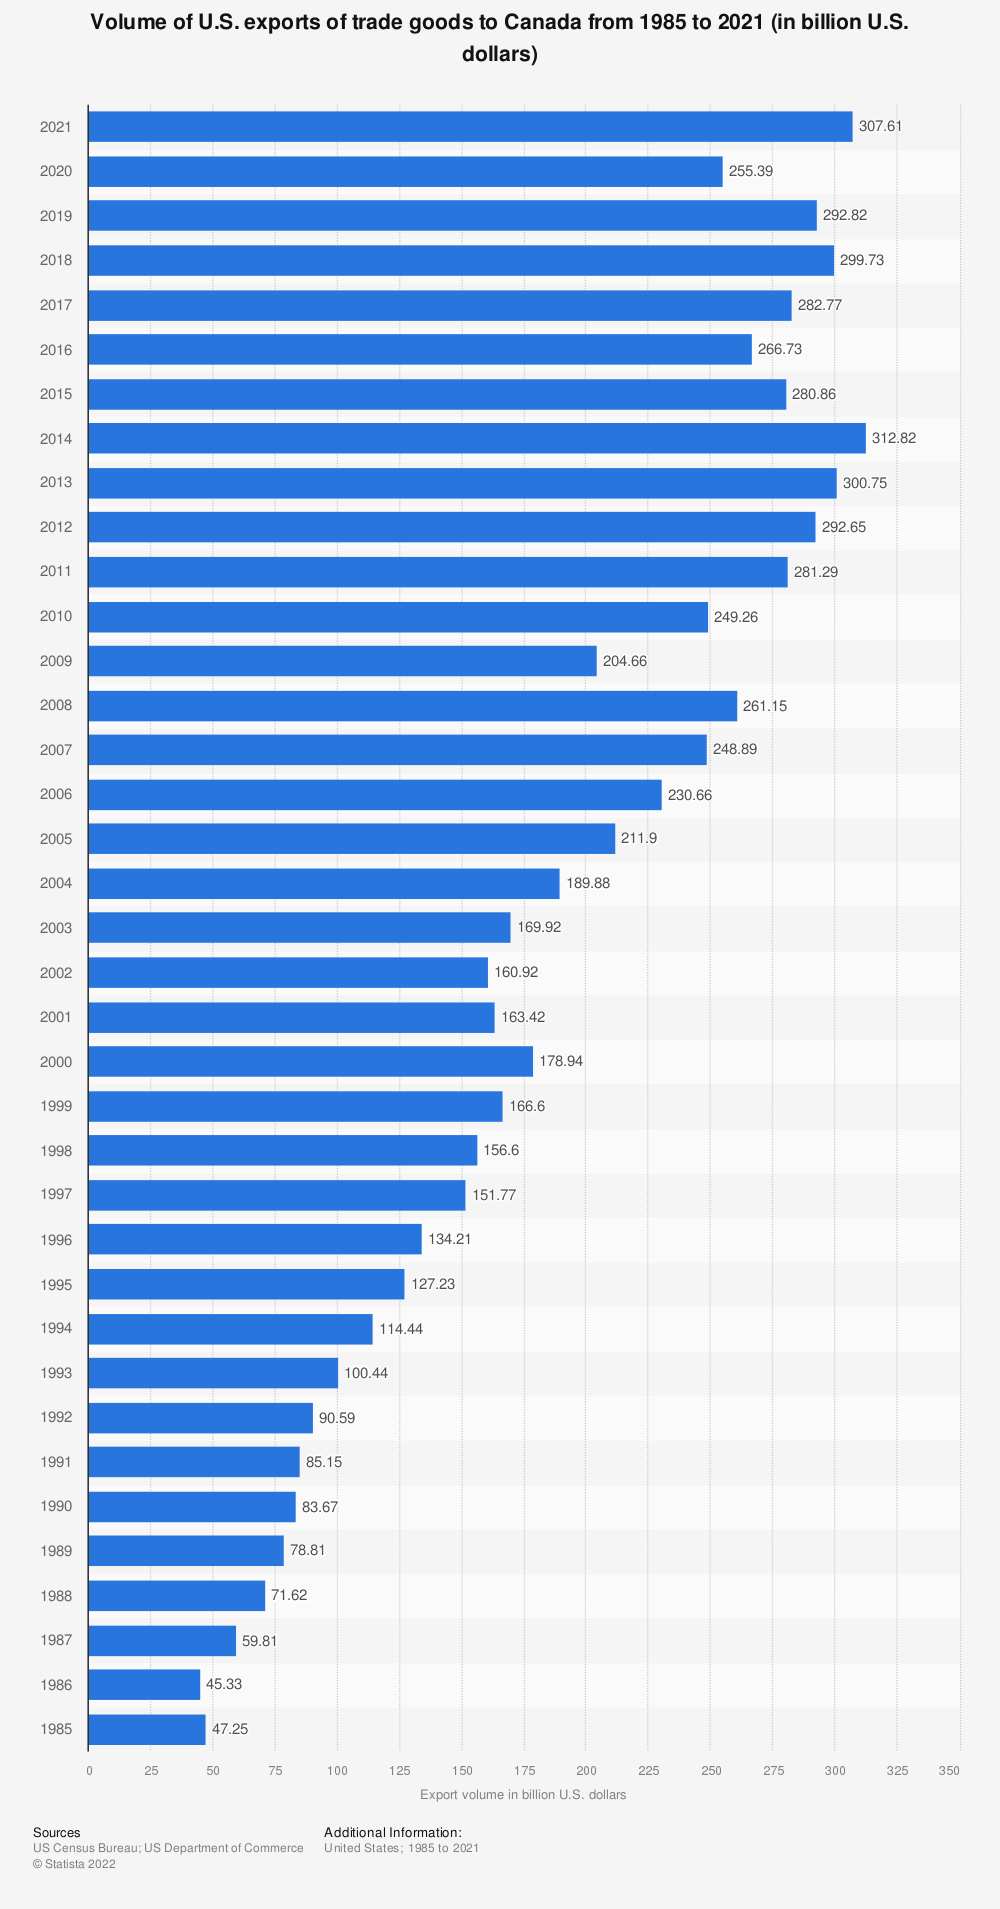 Statistic: Volume of U.S. exports of trade goods to Canada from 1985 to 2018 (in billion U.S. dollars) | Statista